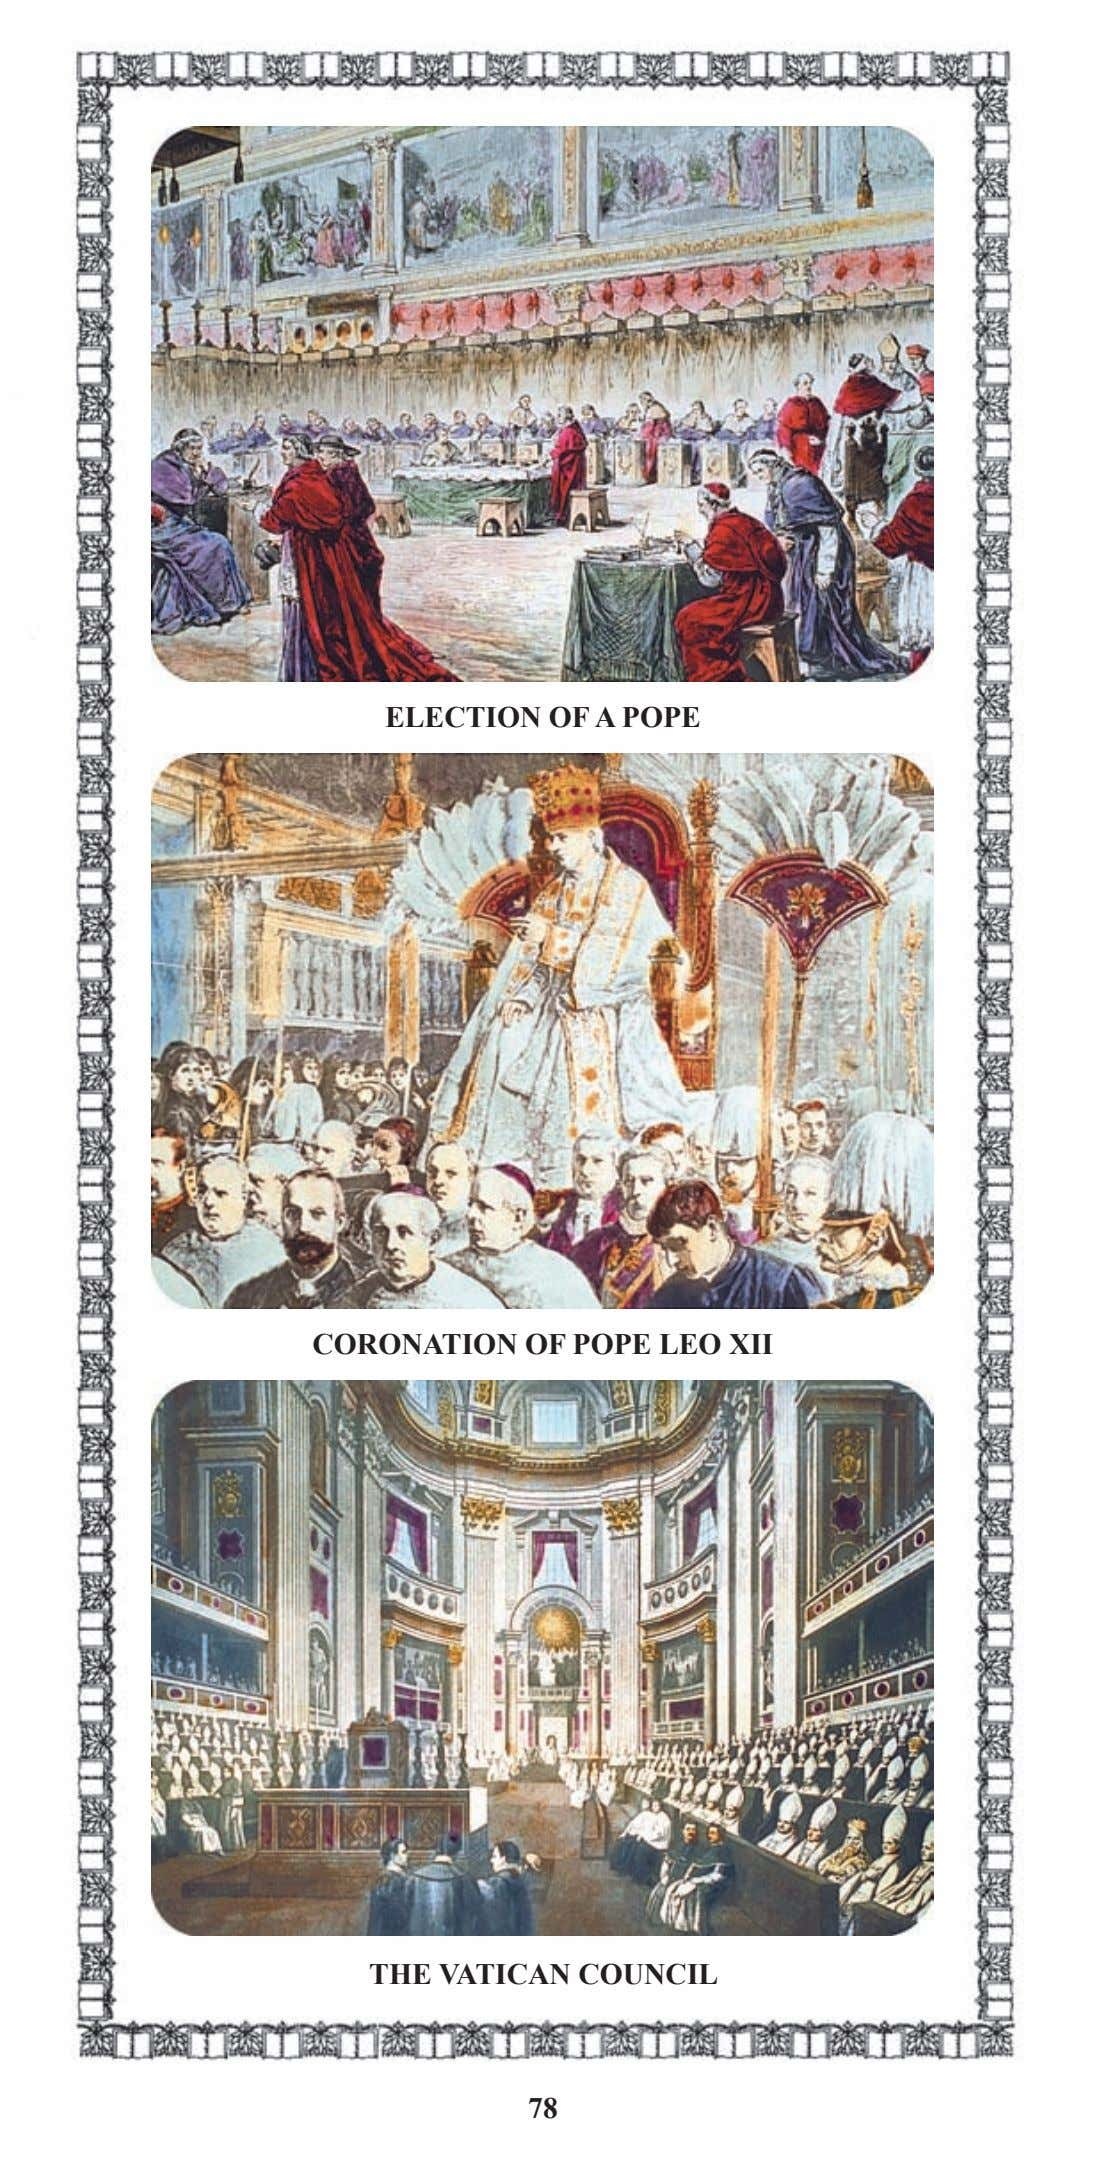 ELECTION OF A POPE CORONATION OF POPE LEO XII THE VATICAN COUNCIL 78